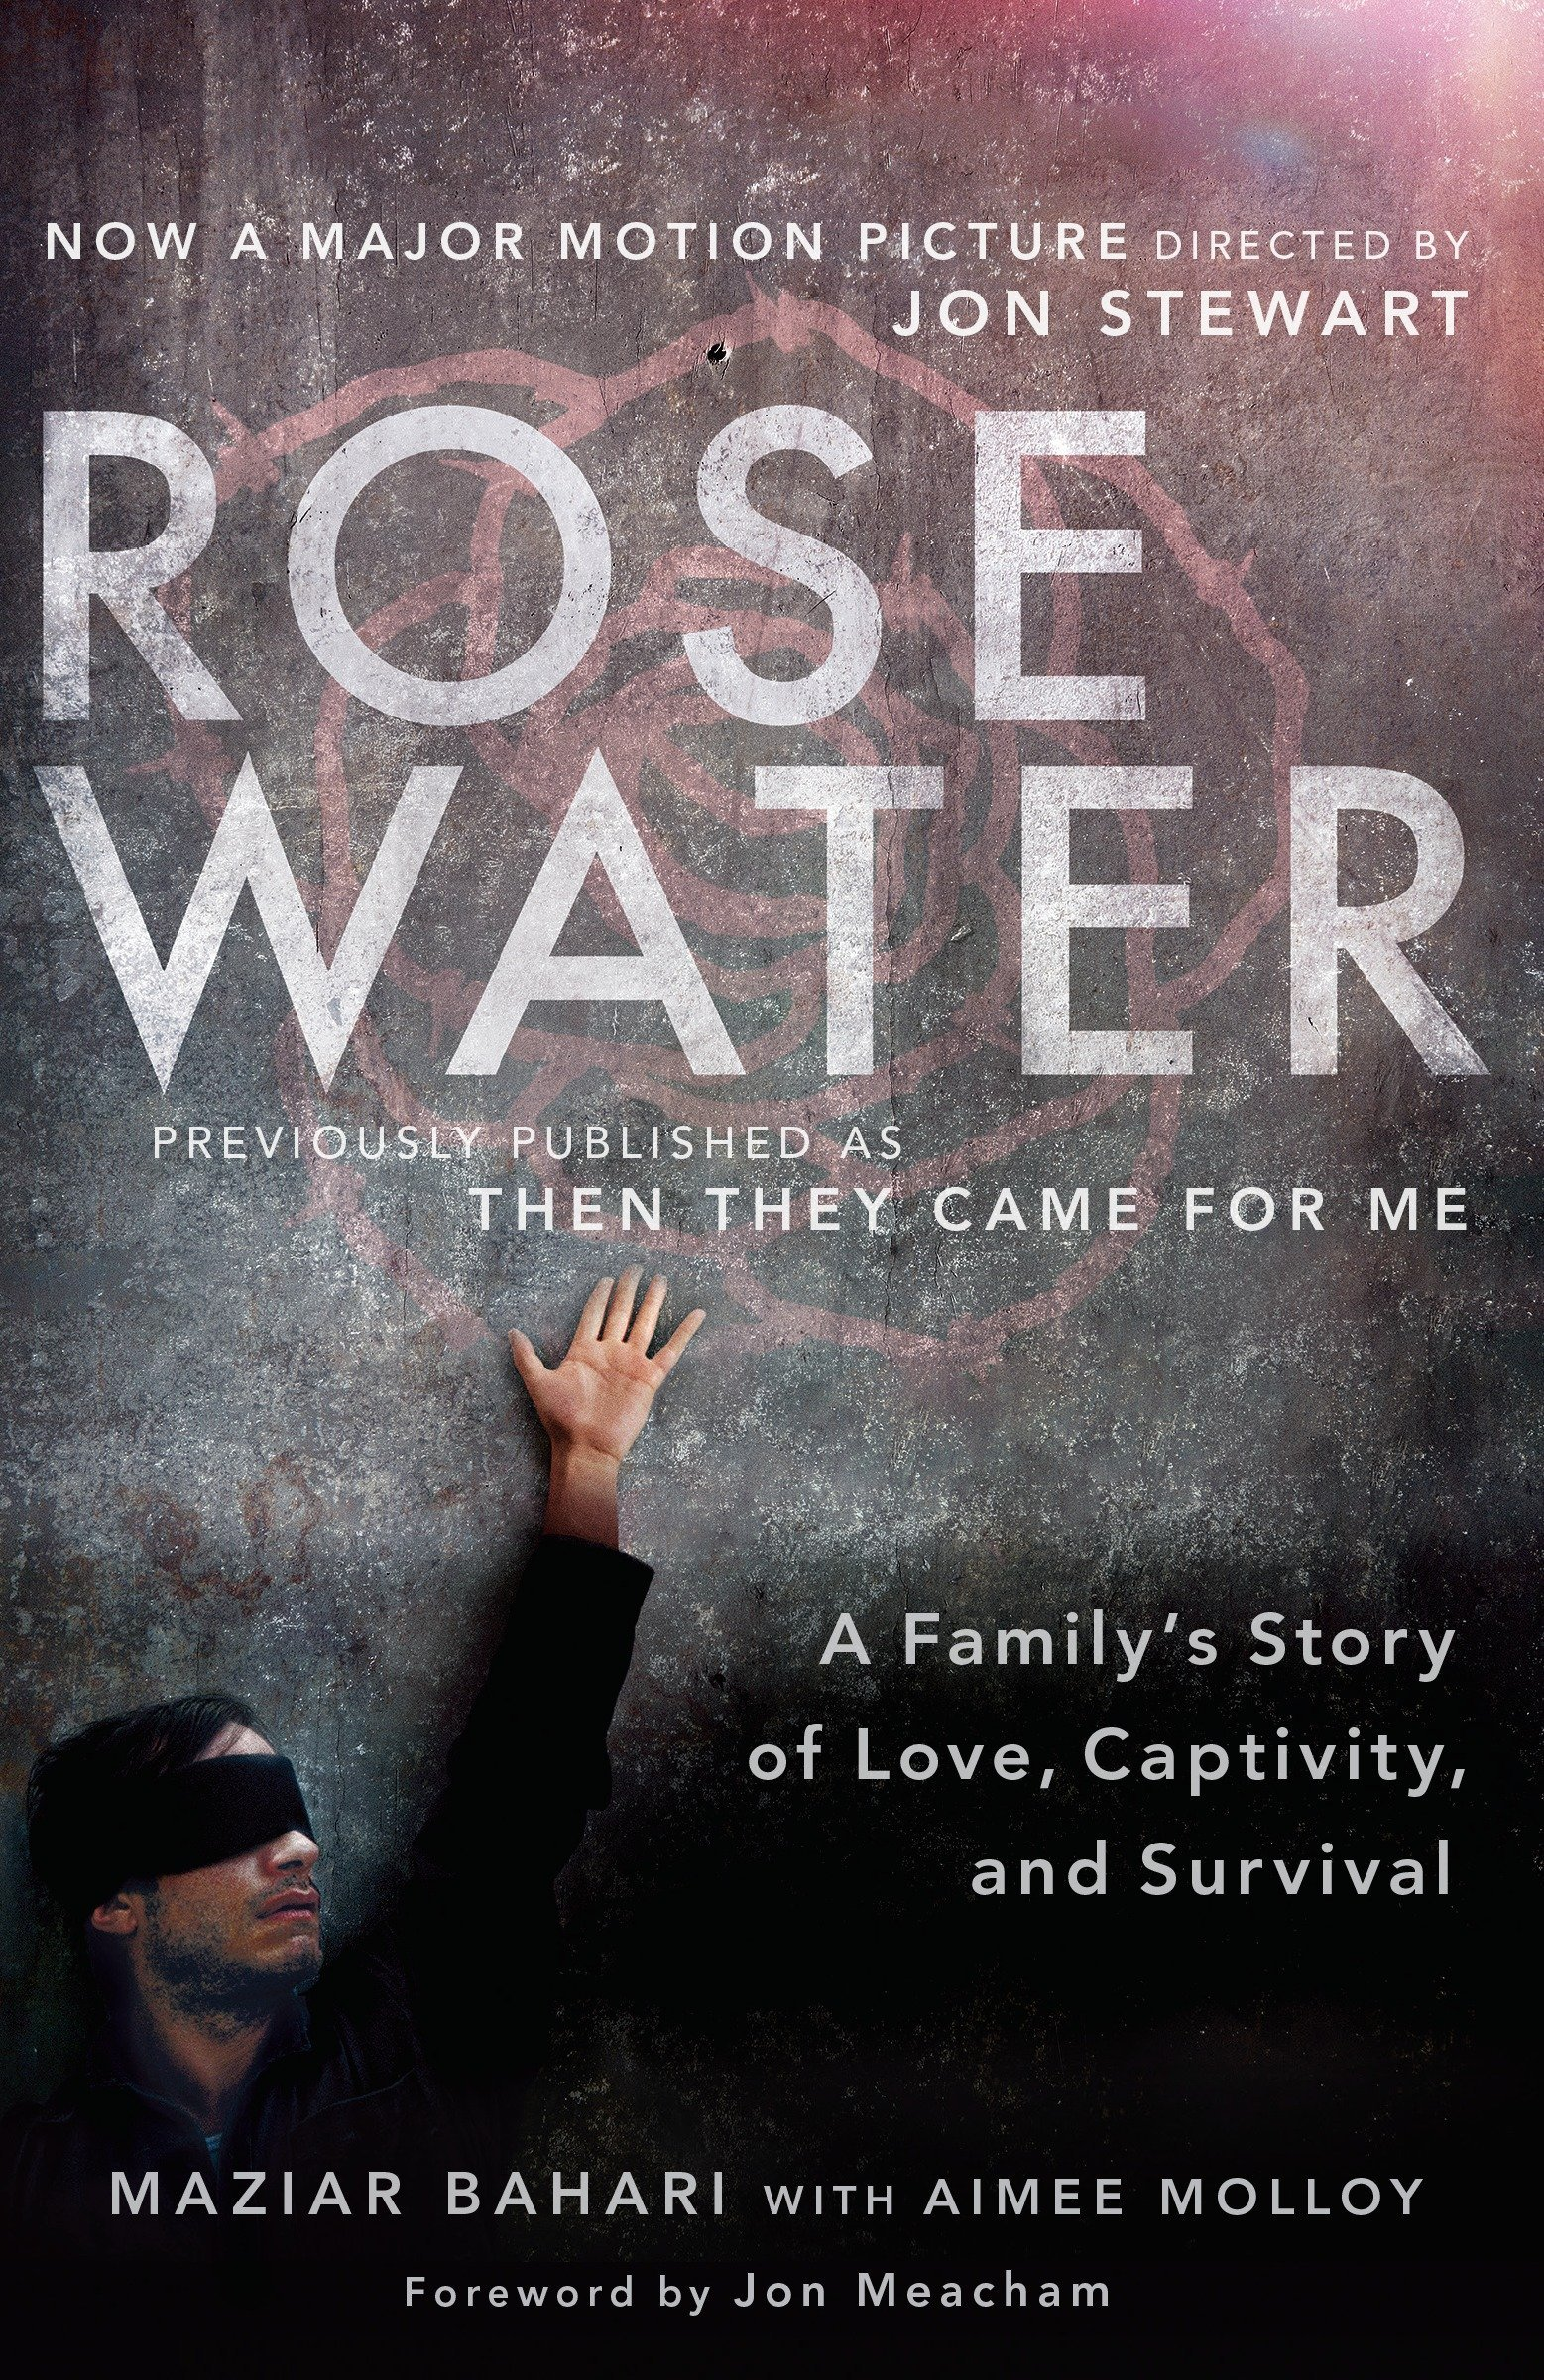 Download Rosewater (Movie Tie-in Edition): A Family's Story of Love, Captivity, and Survival pdf epub